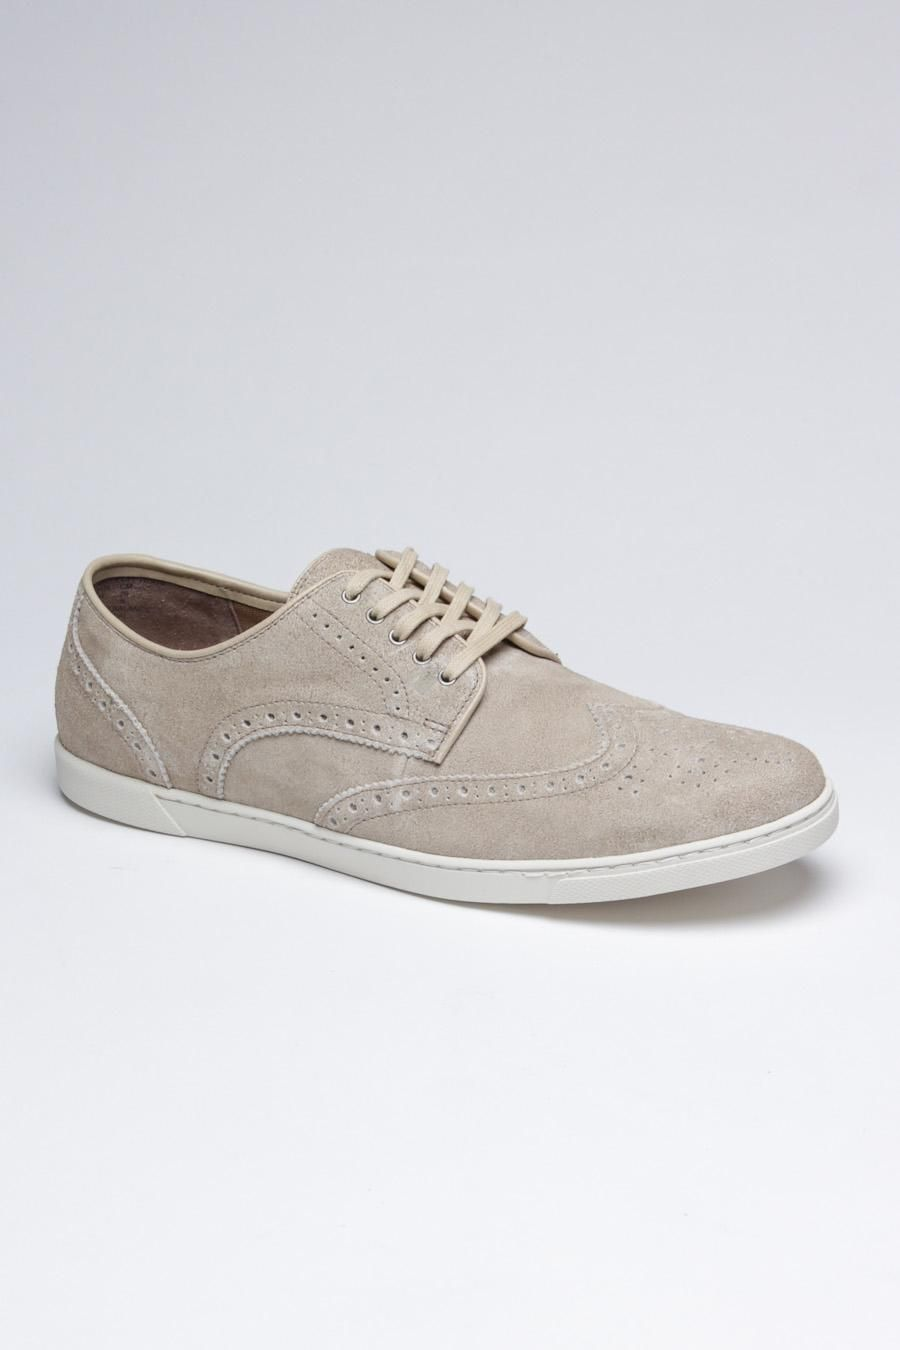 Join Jackthreads Hush Puppies Shoes Mens Hush Puppies Casual Shoes